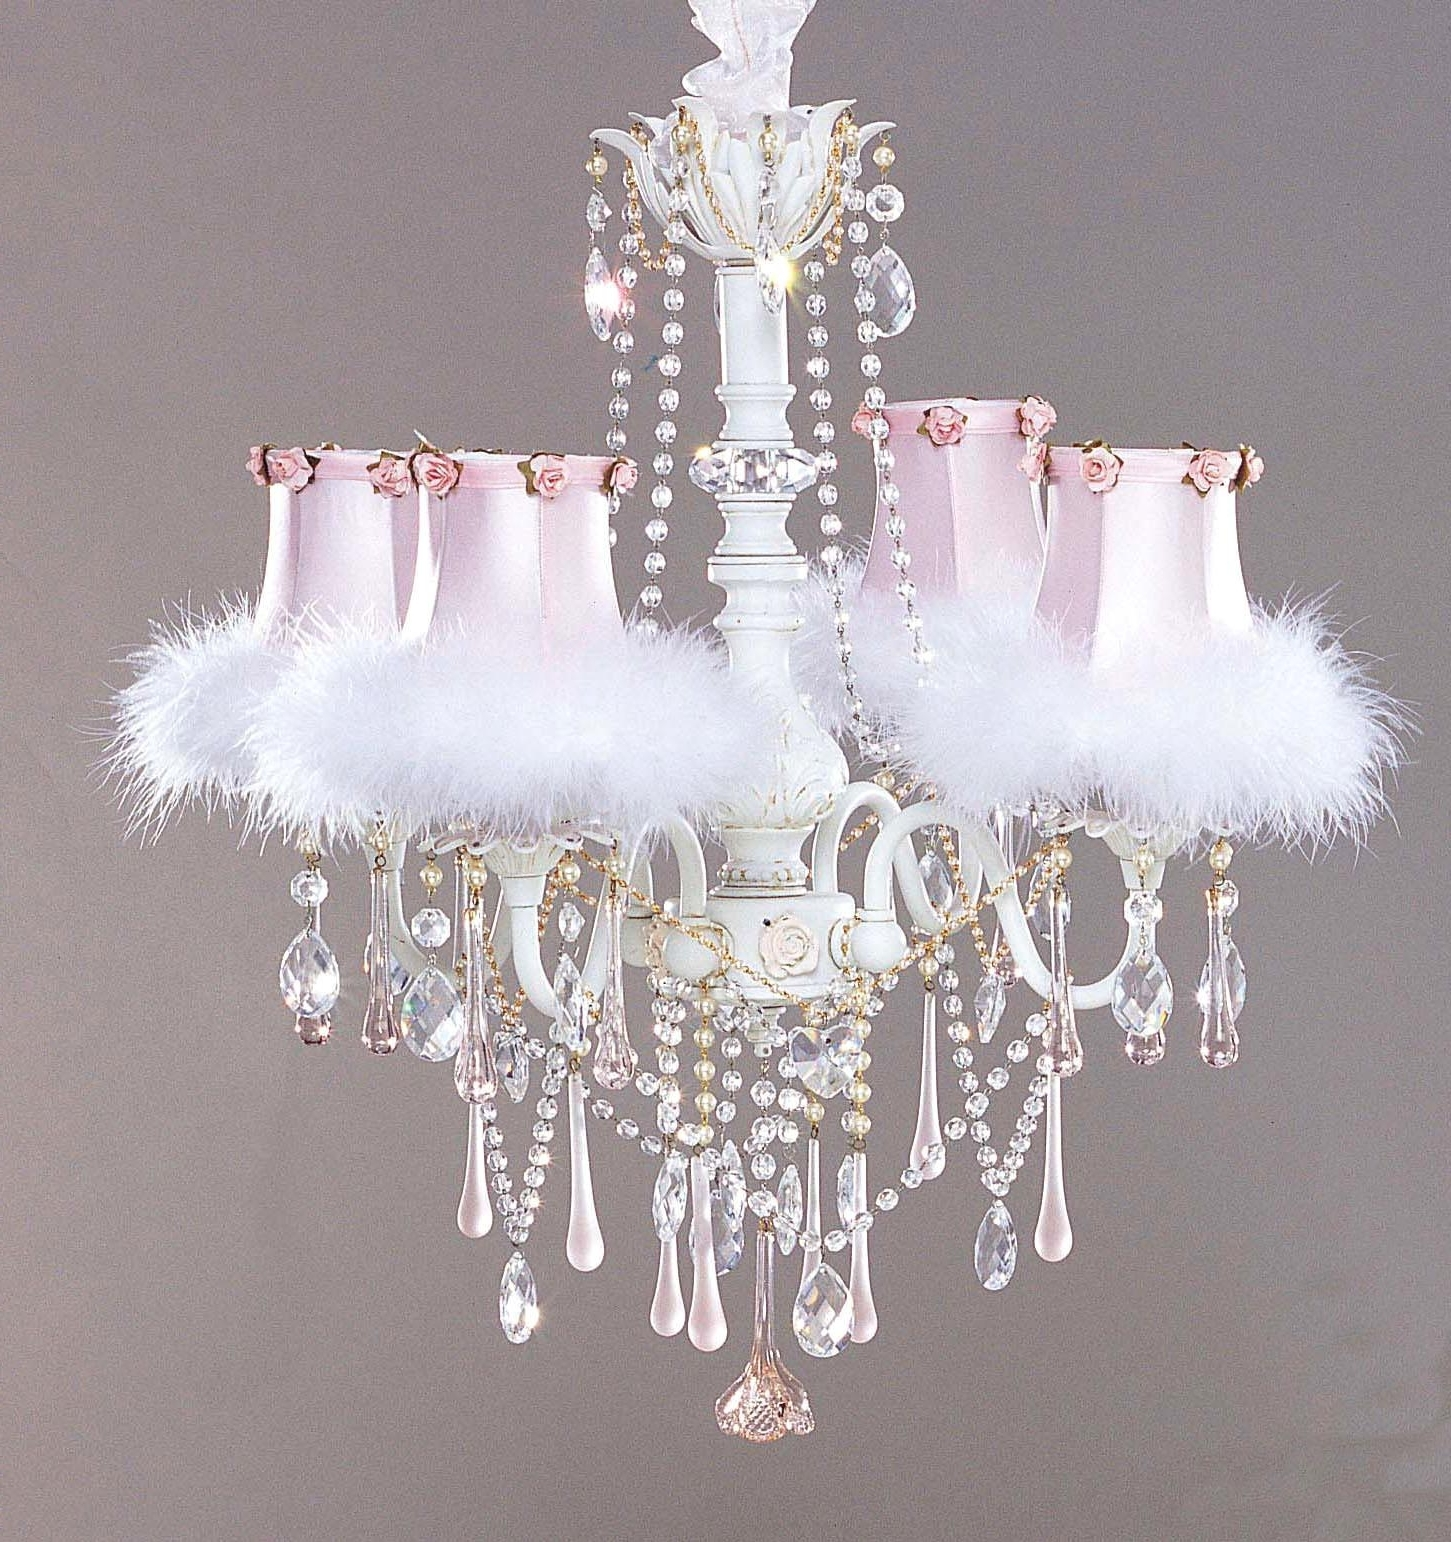 Recent Chandeliers : Shabby Chic Chandelier Elegant Chandelier Small Throughout Small Shabby Chic Chandelier (View 10 of 15)